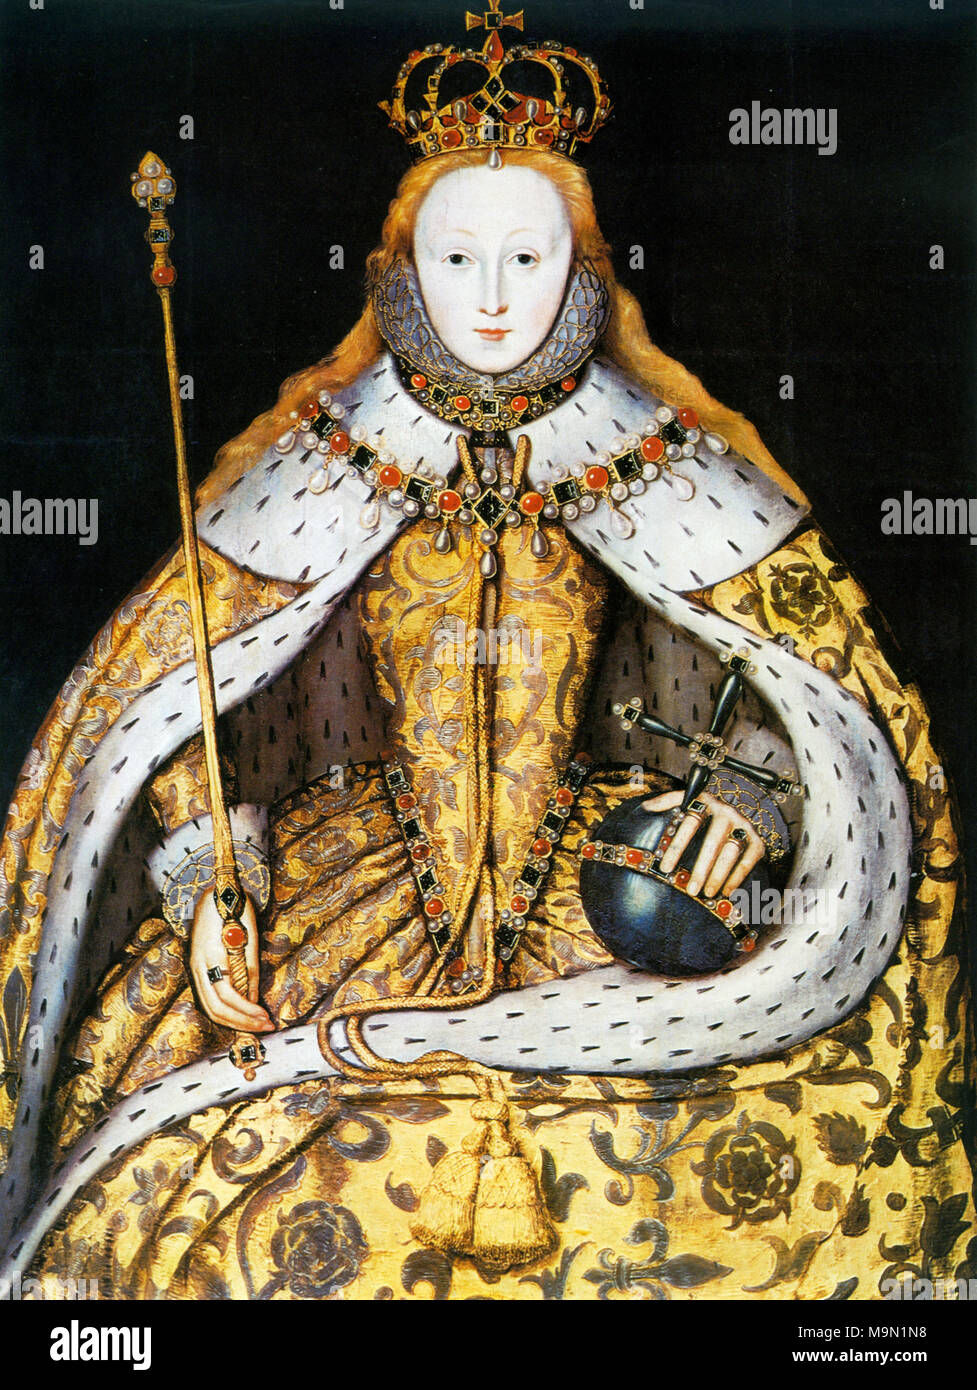 QUEEN ELIZABETH I OF ENGLAND (1533-1603)  in her Coronation robes in 1558. - Stock Image